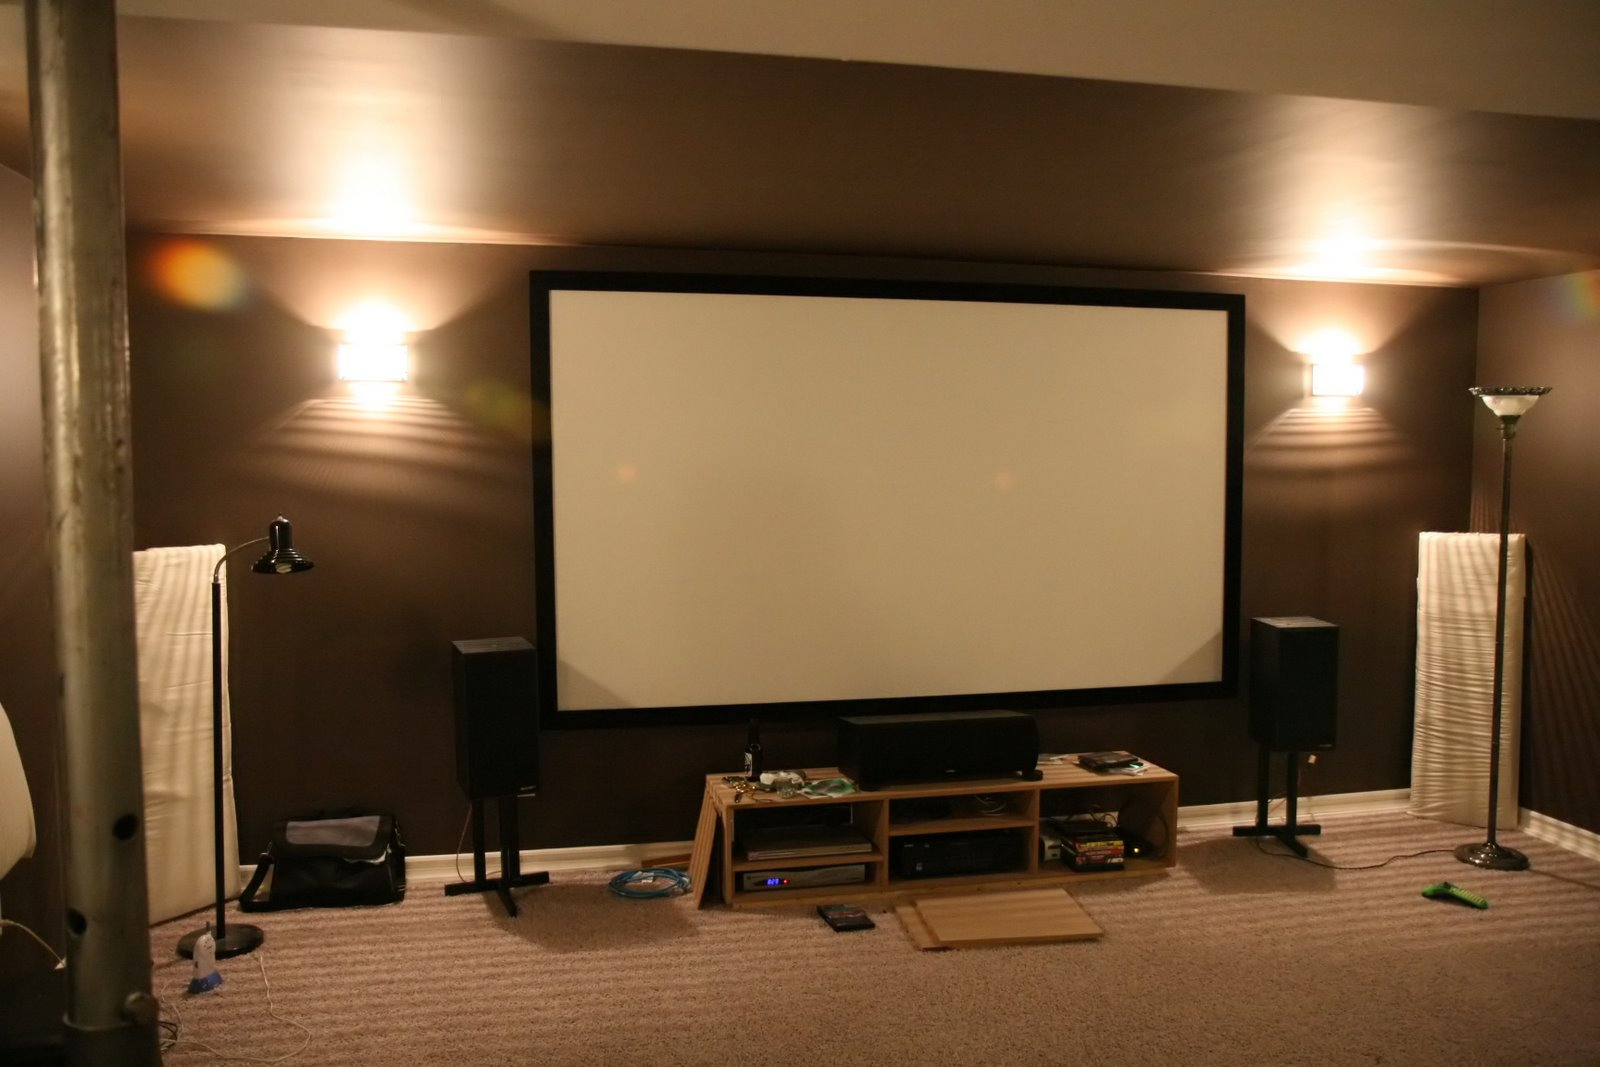 how to build a movie theater room in your apartment indroyal rh indroyalproperties com Home Theater Projector Setup German TV for Home Theater Projectors